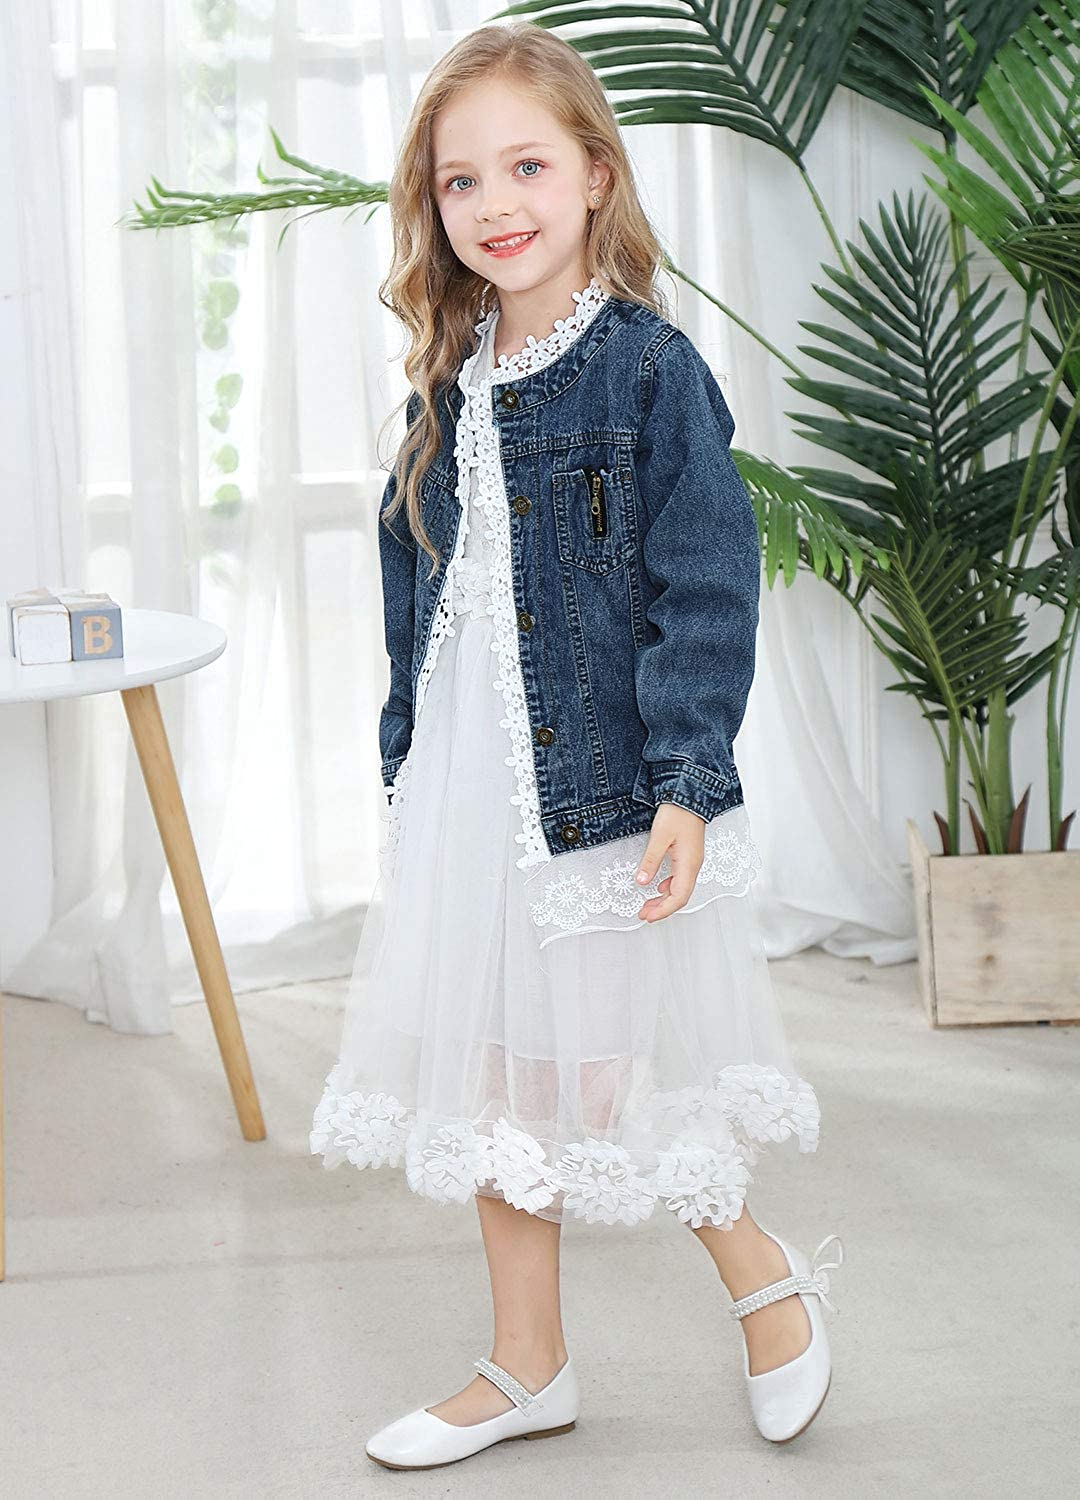 ZFSOCK Kids Girls Denim Jacket with Lace Toddler Jeans Jackets Coat Fashion Cowboy Outwear Spring Autumn Overcoat Birthday Gift Idea Age 2-10 Years